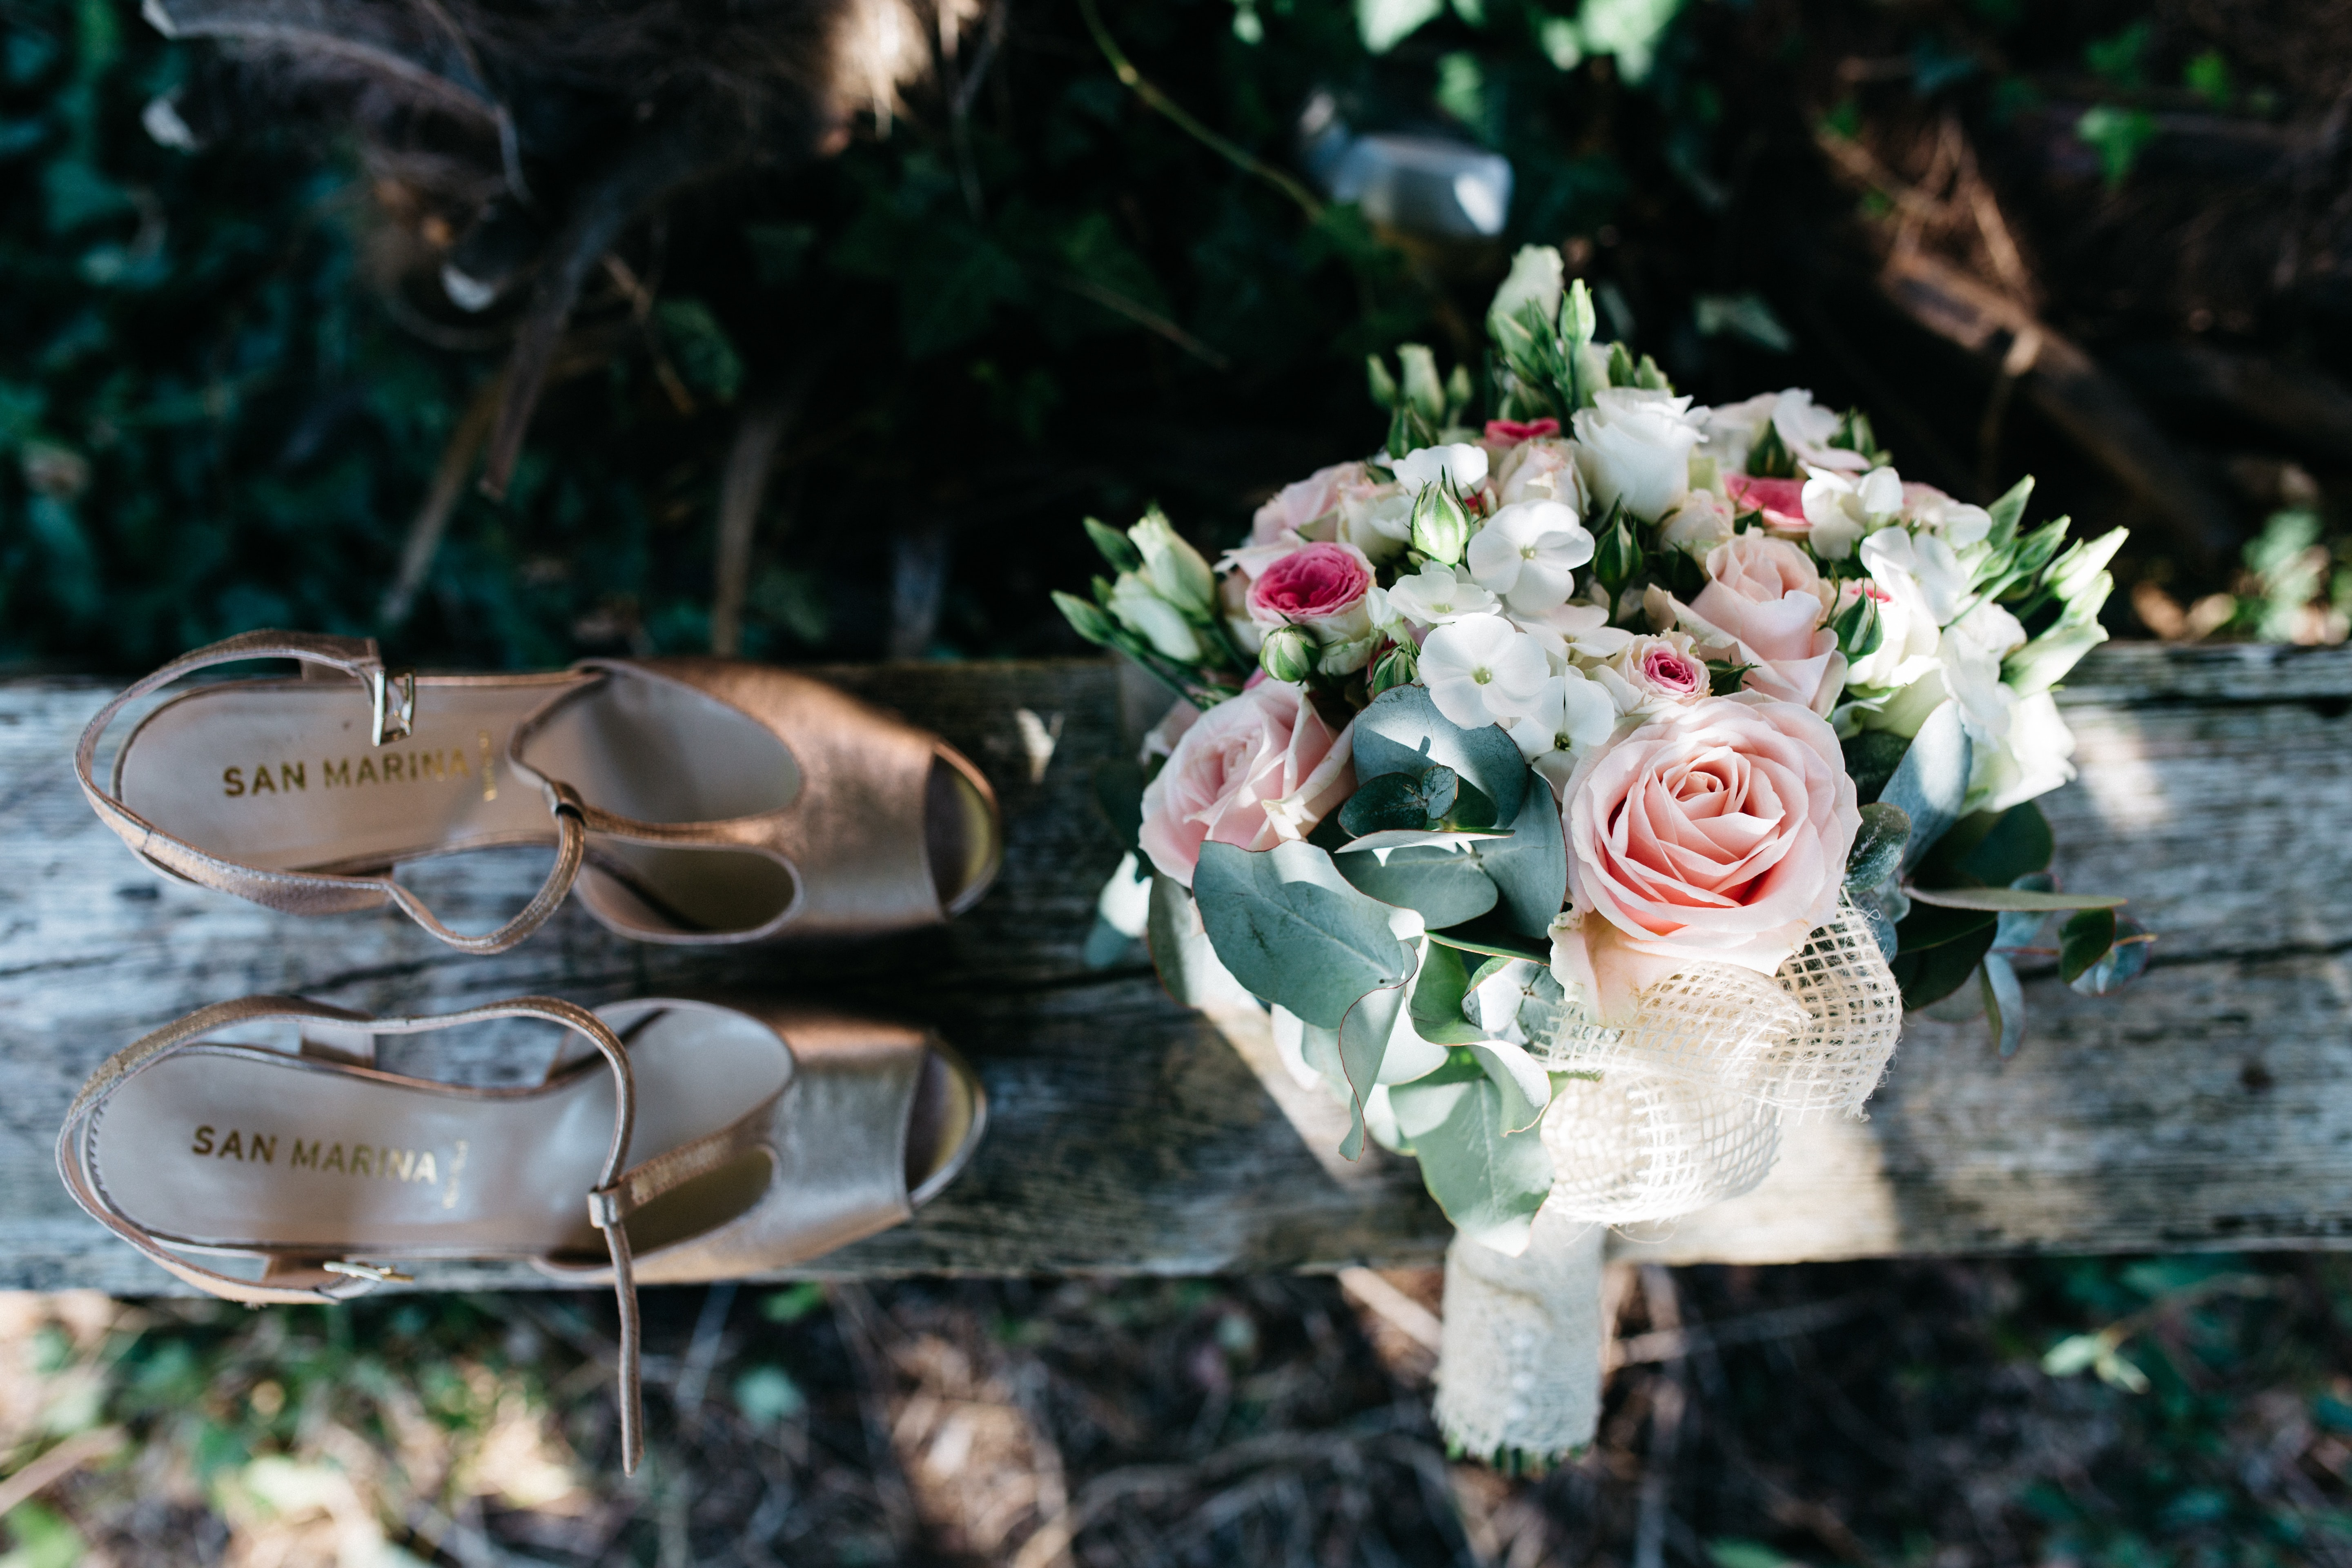 pair of shoes besides flower bouquet